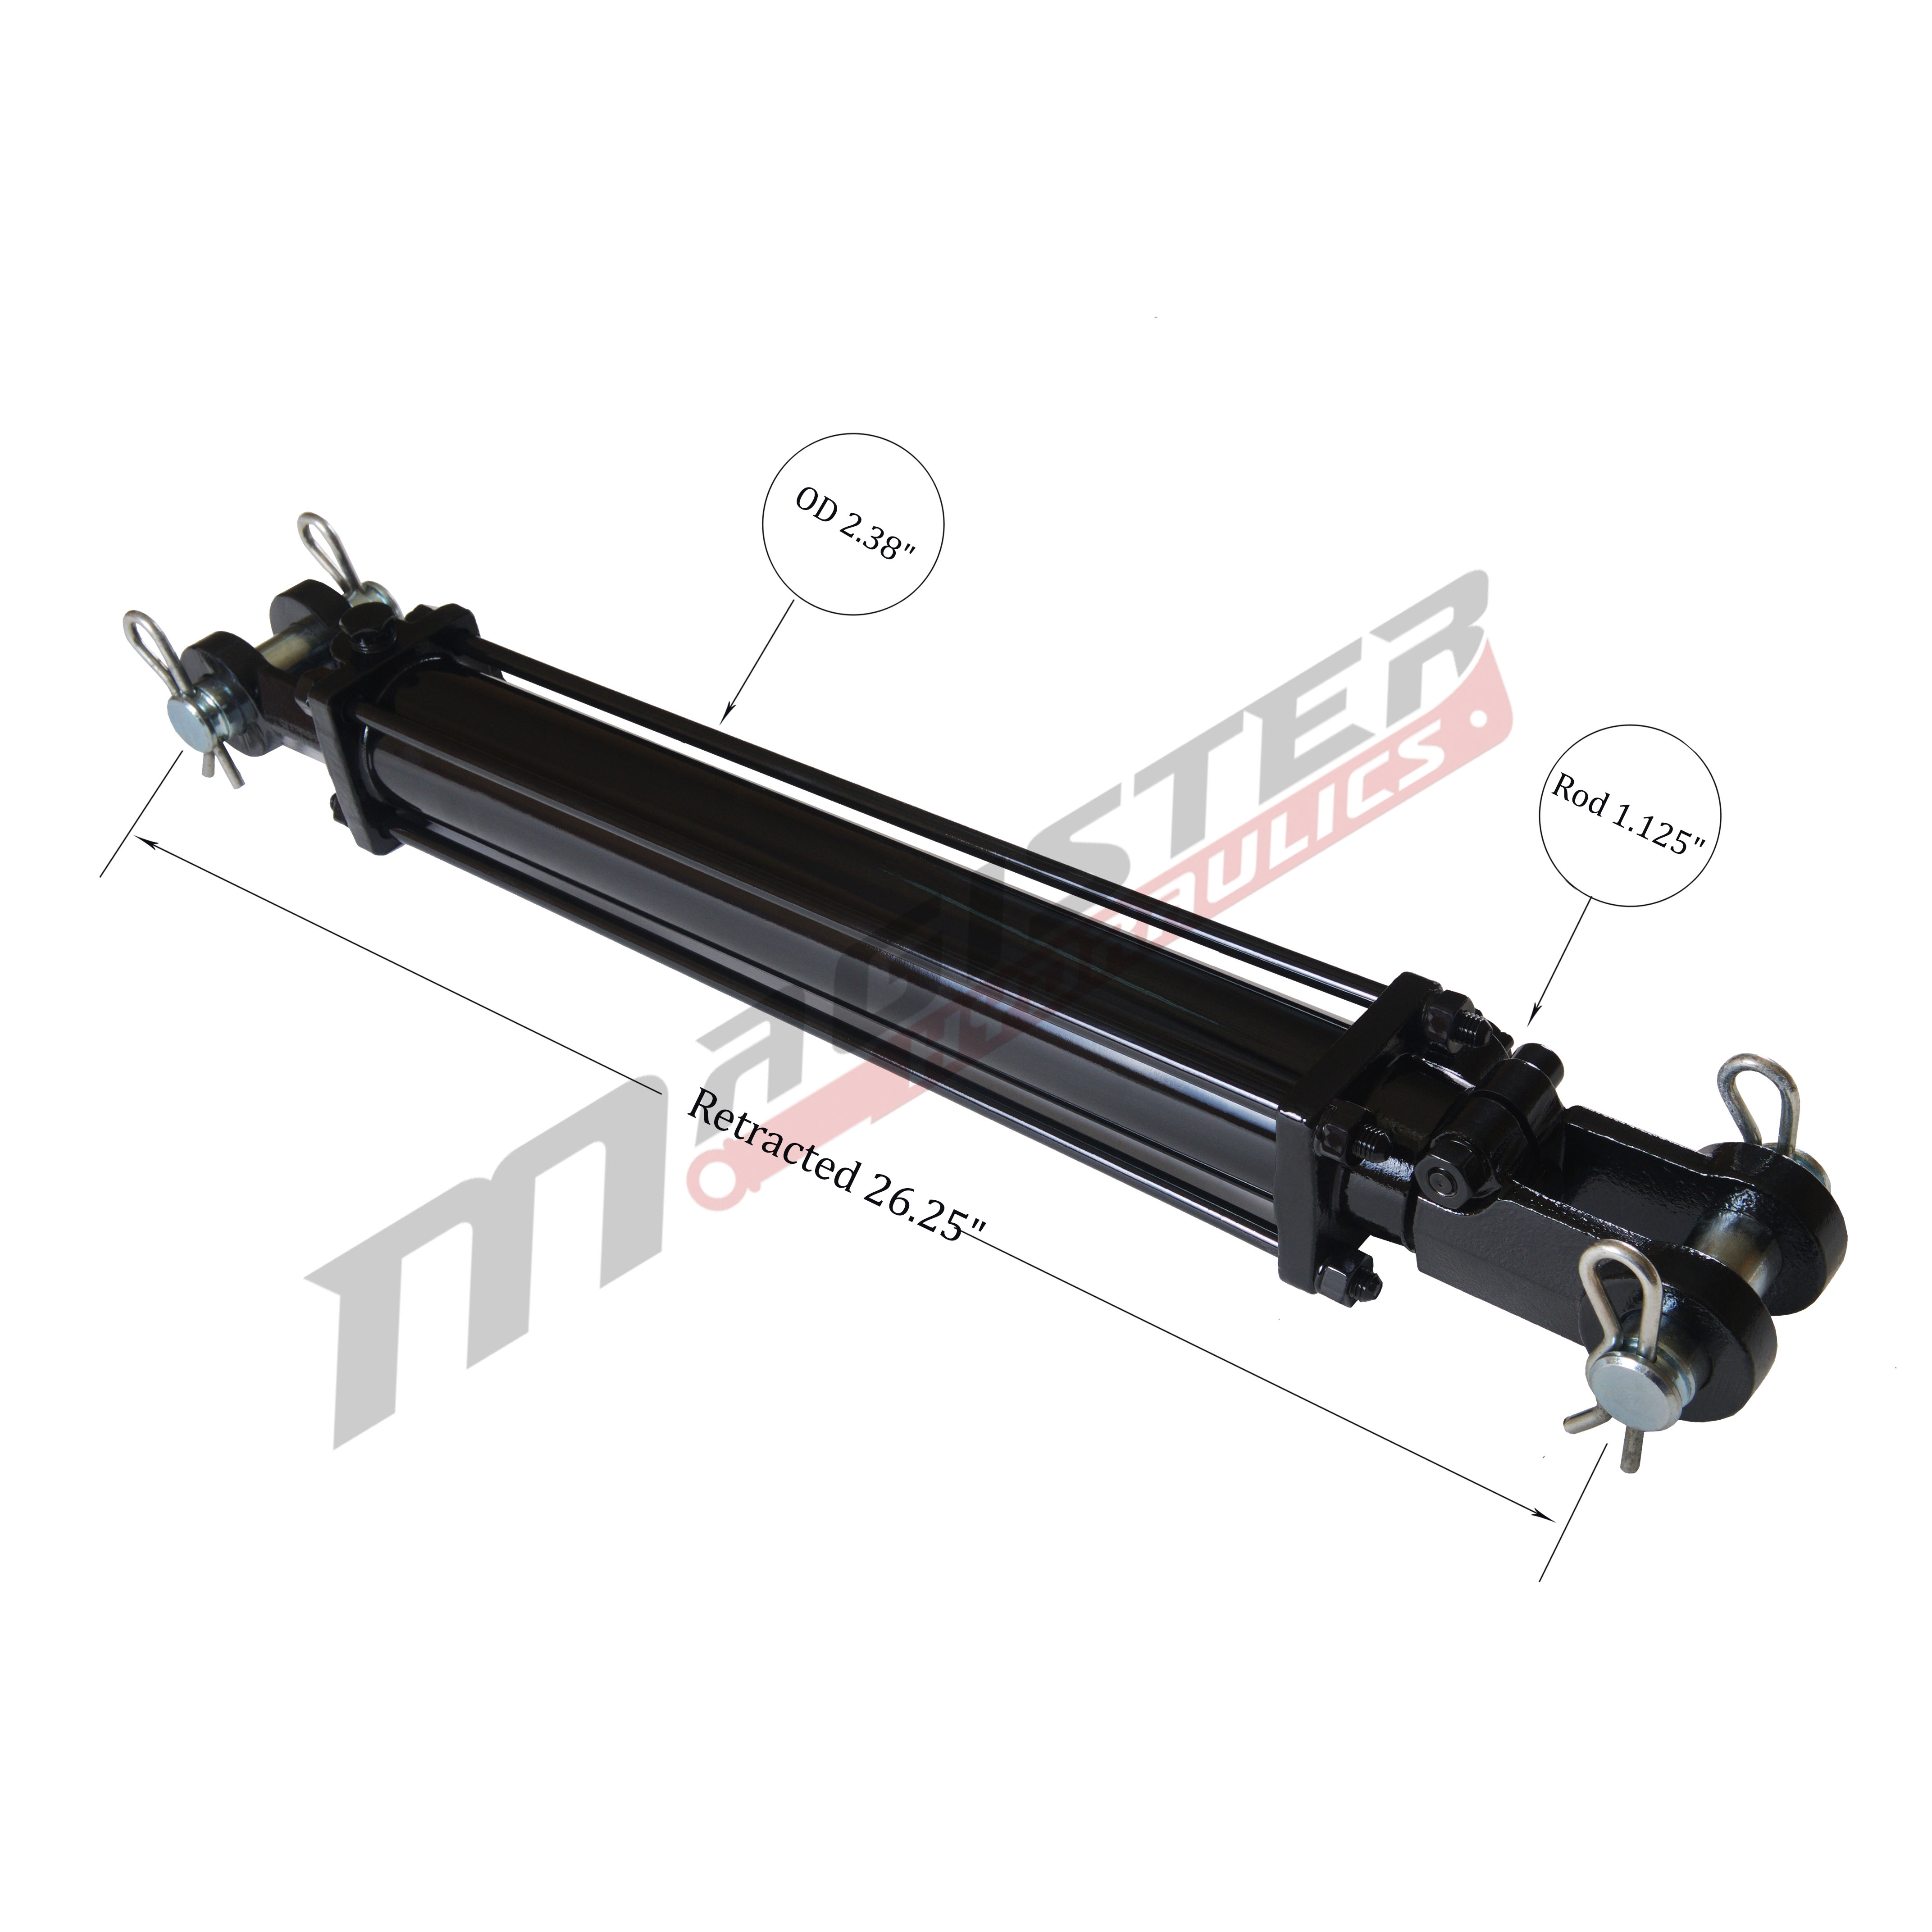 2 bore x 16 stroke hydraulic cylinder, tie rod double acting cylinder | Magister Hydraulics